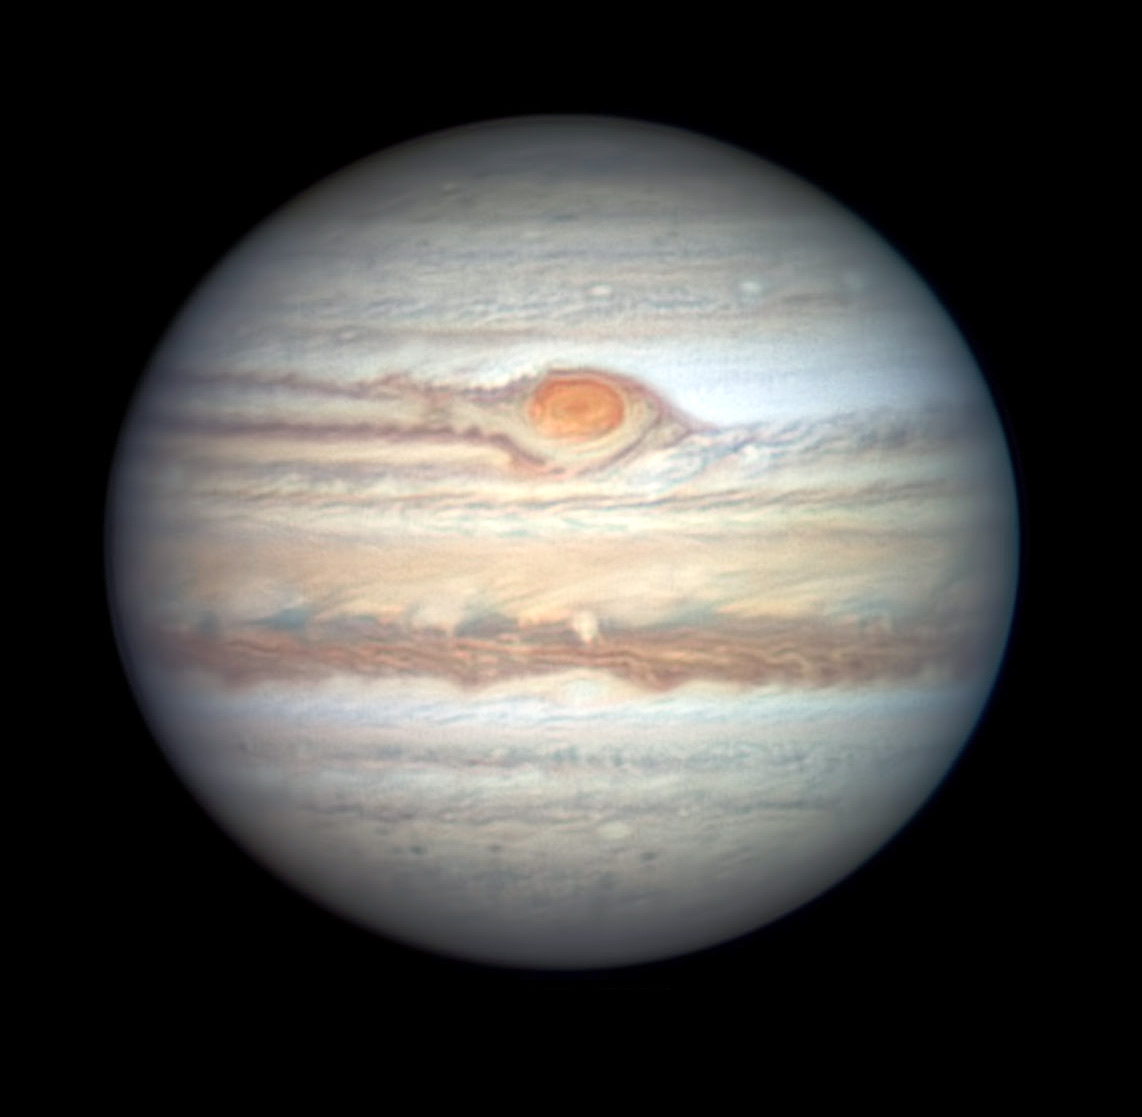 Jupiter with Red Spot on May 29, 2019